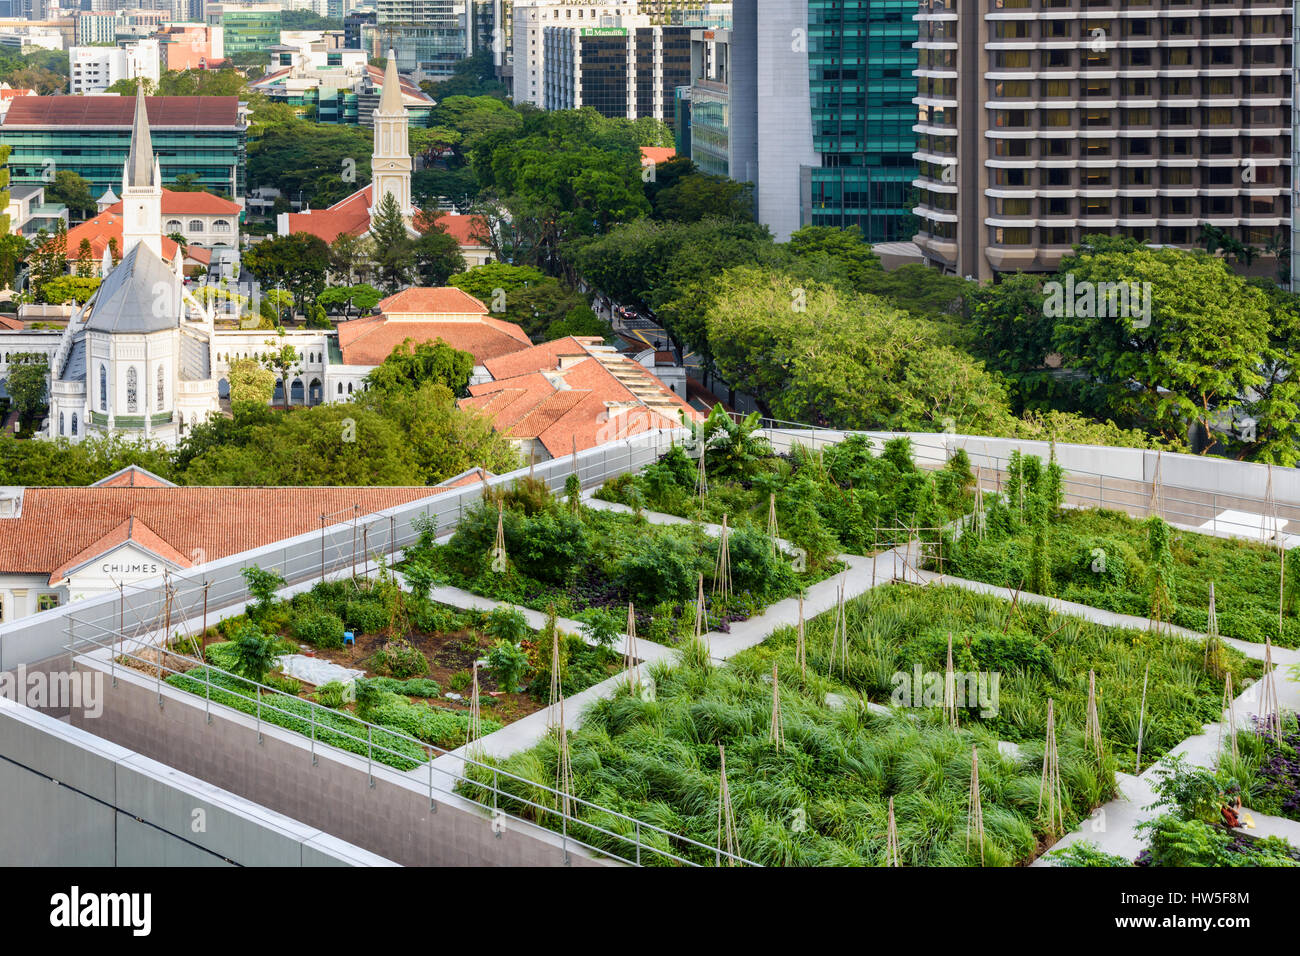 Dachgarten auf der Raffles City Shopping Centre, Singapur Stockbild